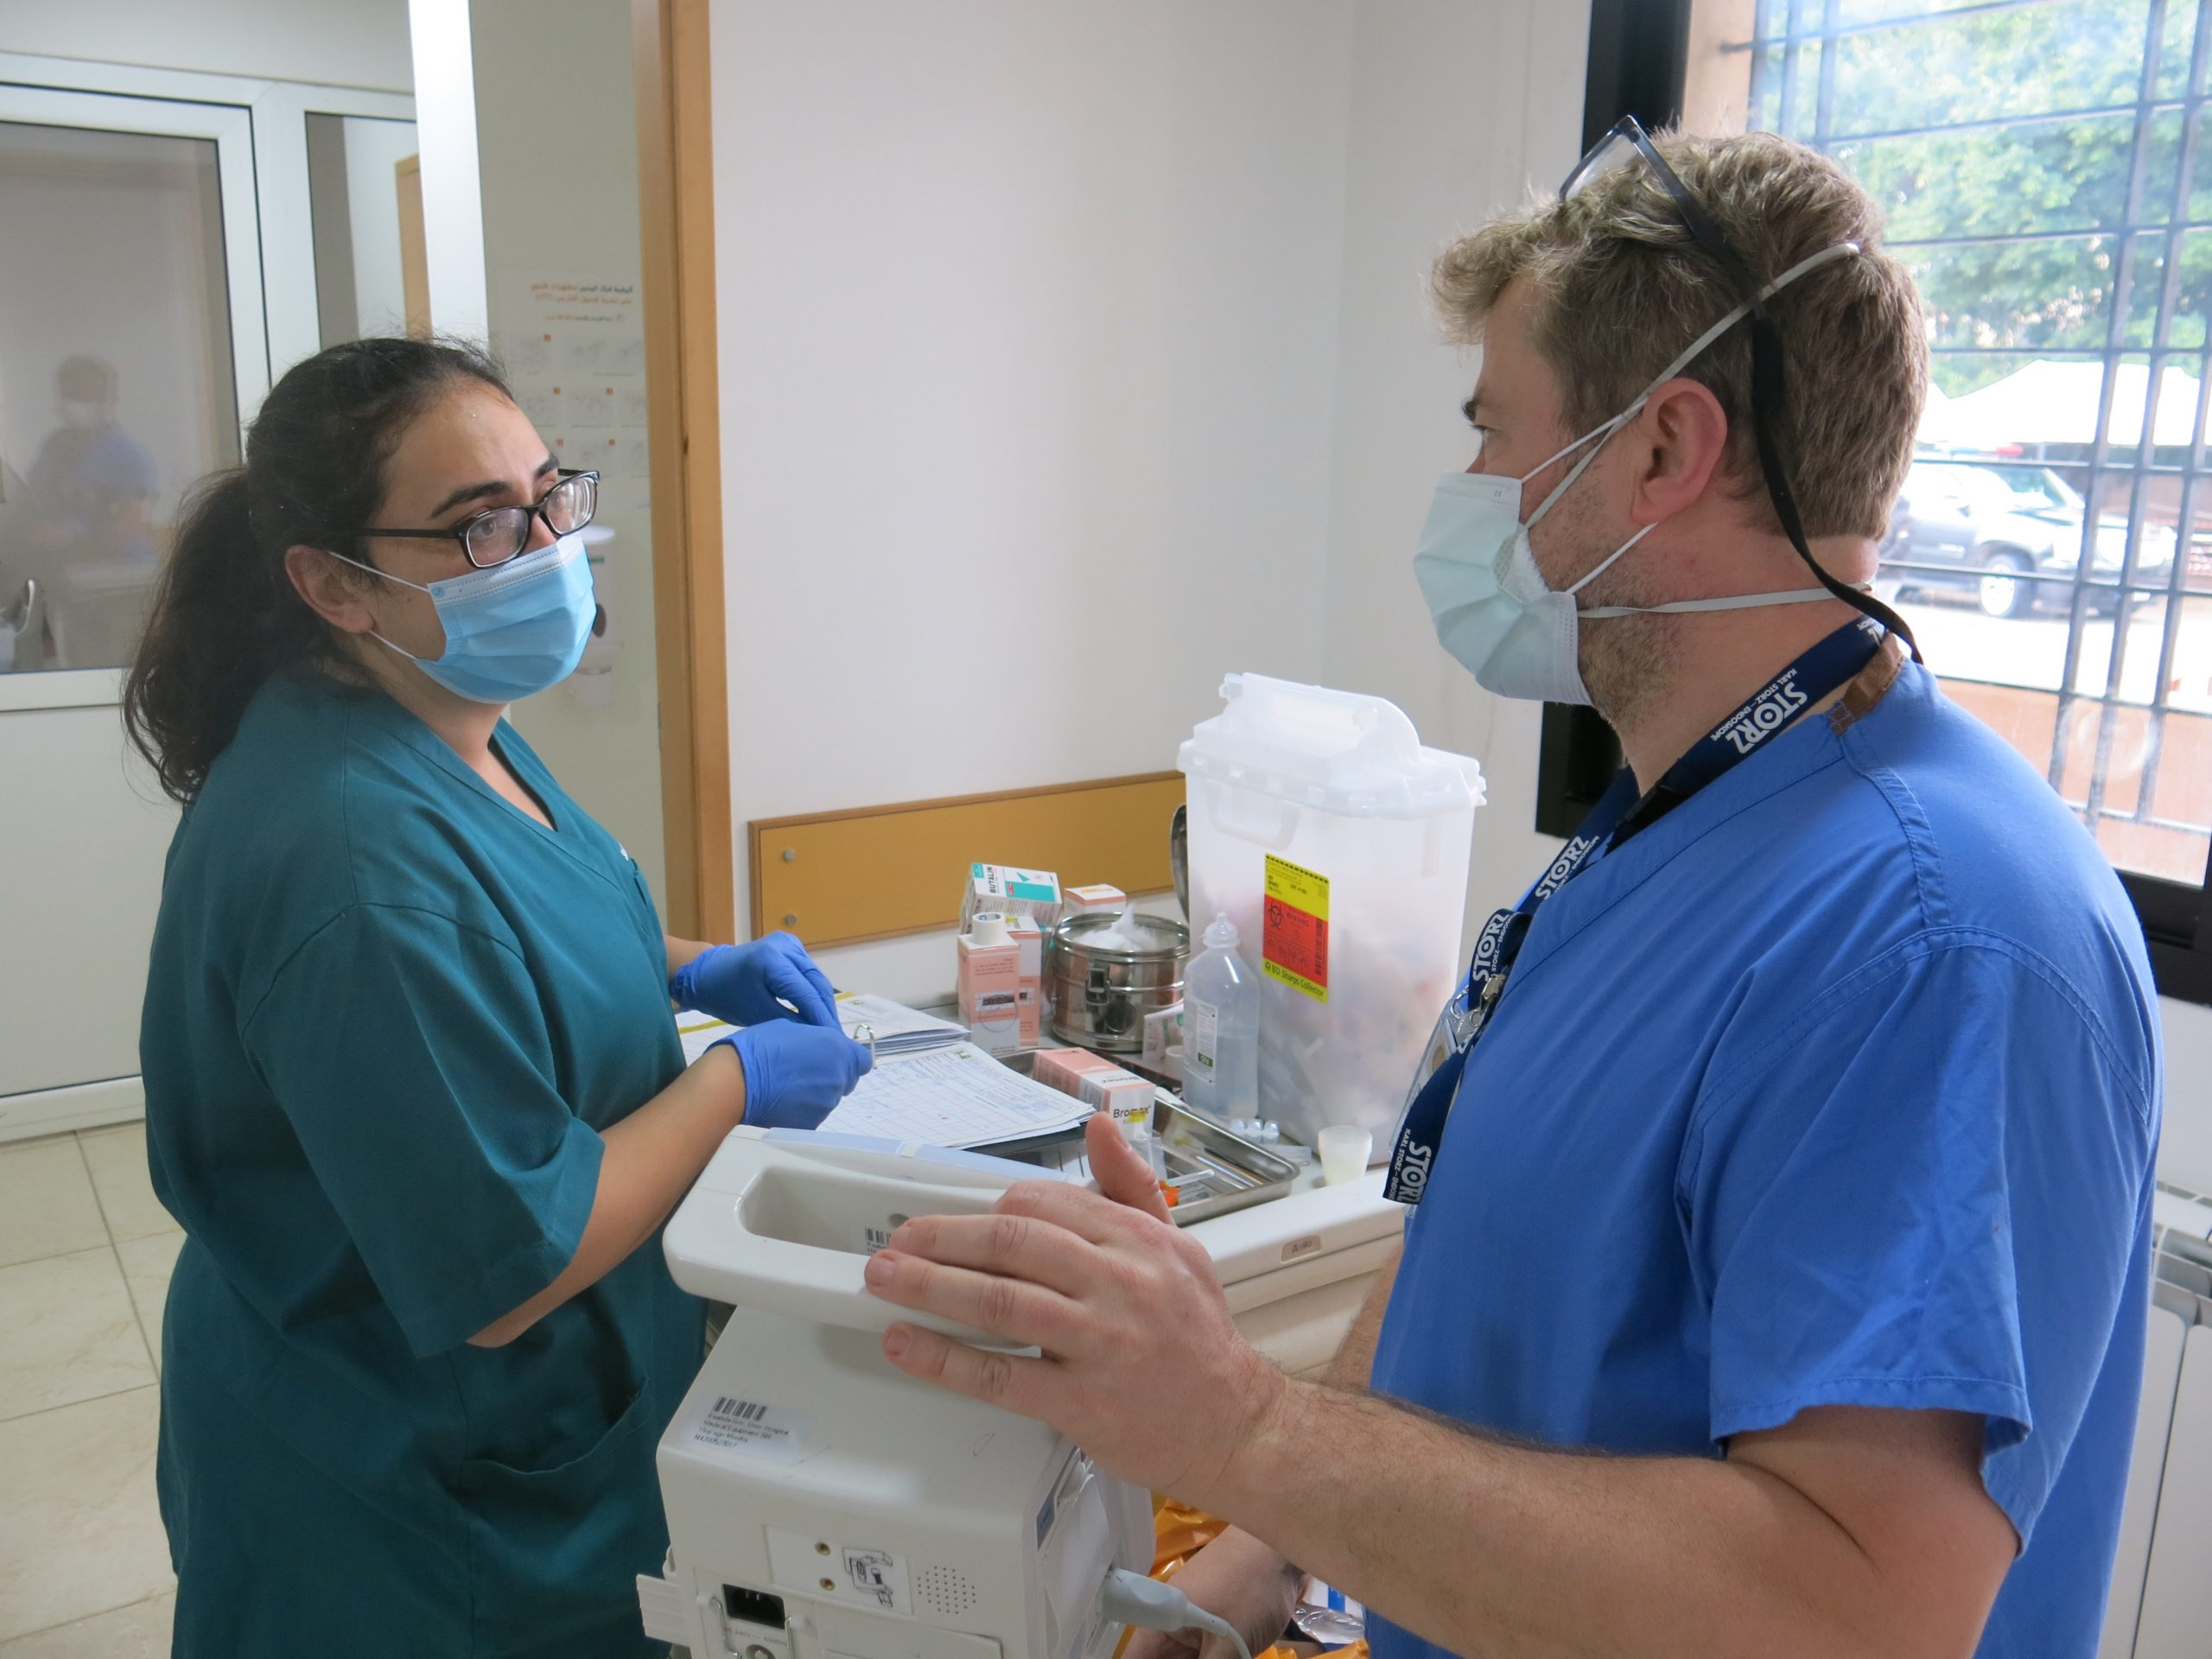 ICU nurse John Irvine conducts clinical coaching with nurse Katya el Khoury at Baabda hospital COVID ward. (D Ritzau-Reid, Lebanon 2020)